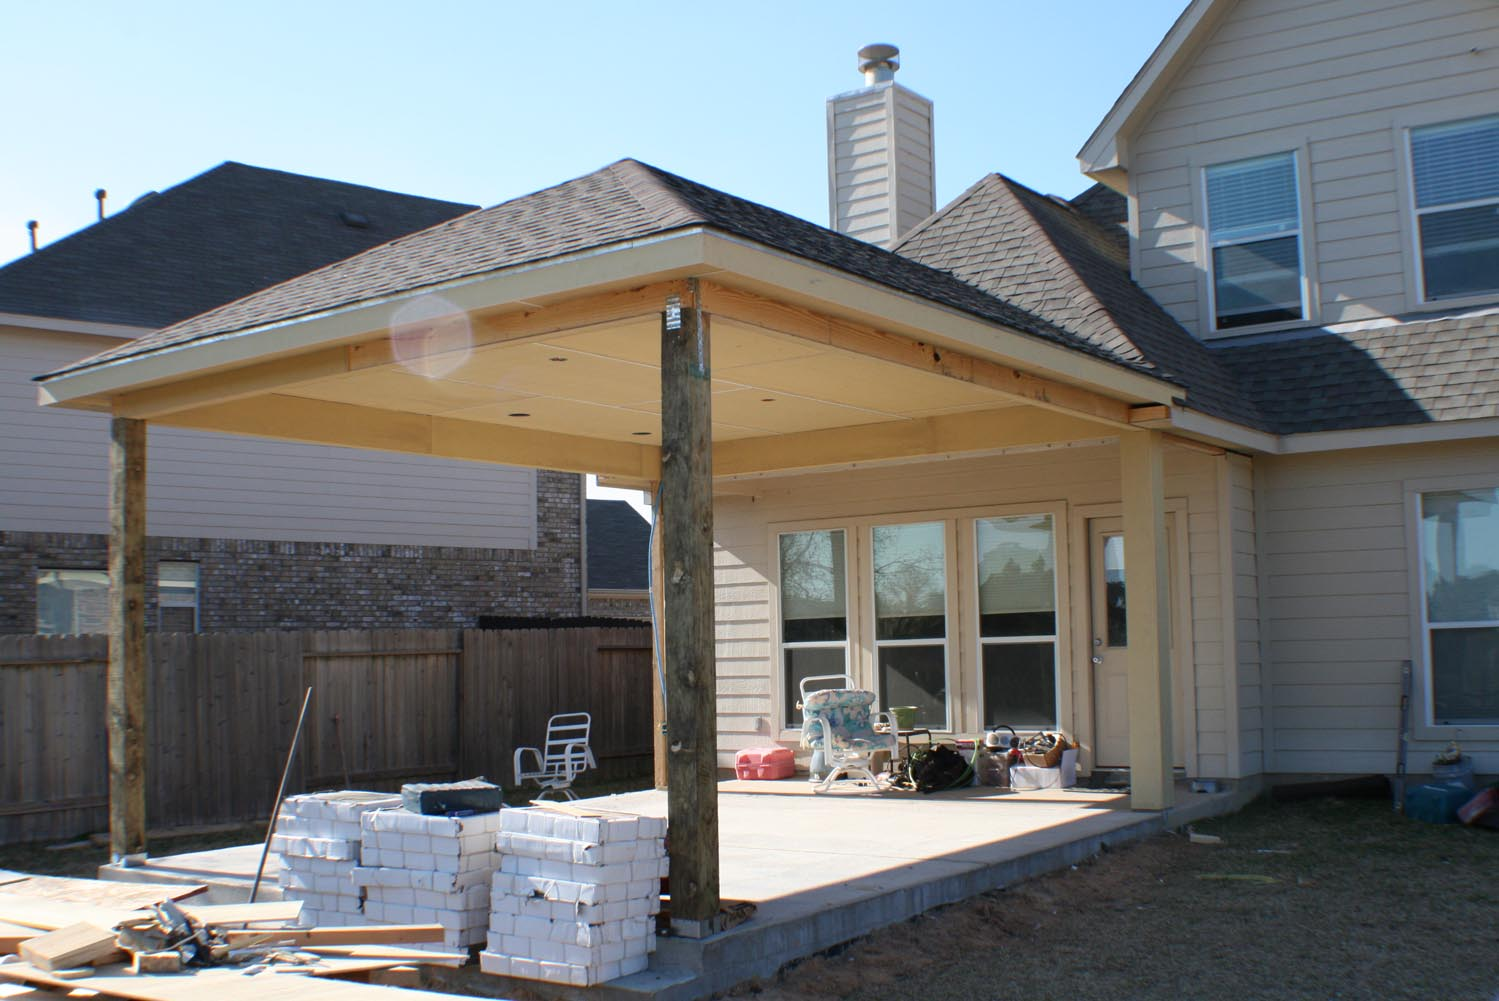 16 by 20 Patio Cover + Outdoor Kitchen - HHI Patio Covers on Backyard Patio Cover  id=29739